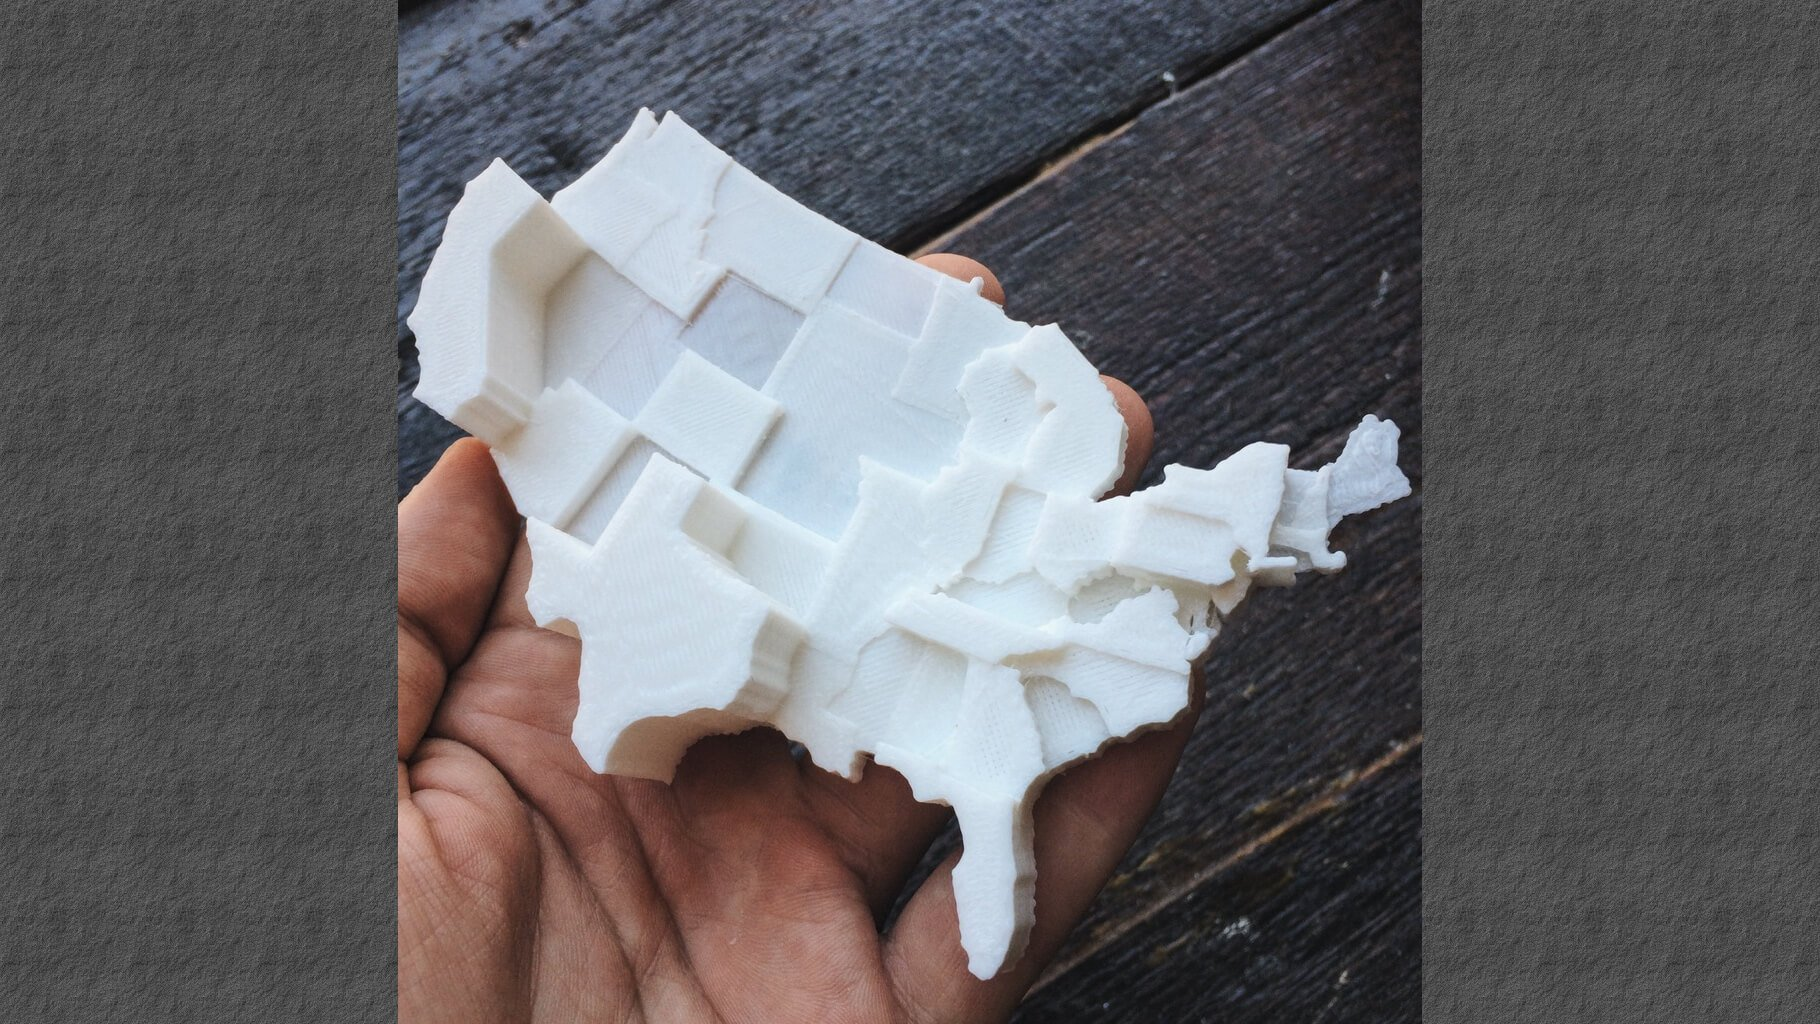 3D Printable Map of the United Stated by Hate Groups | All3DP